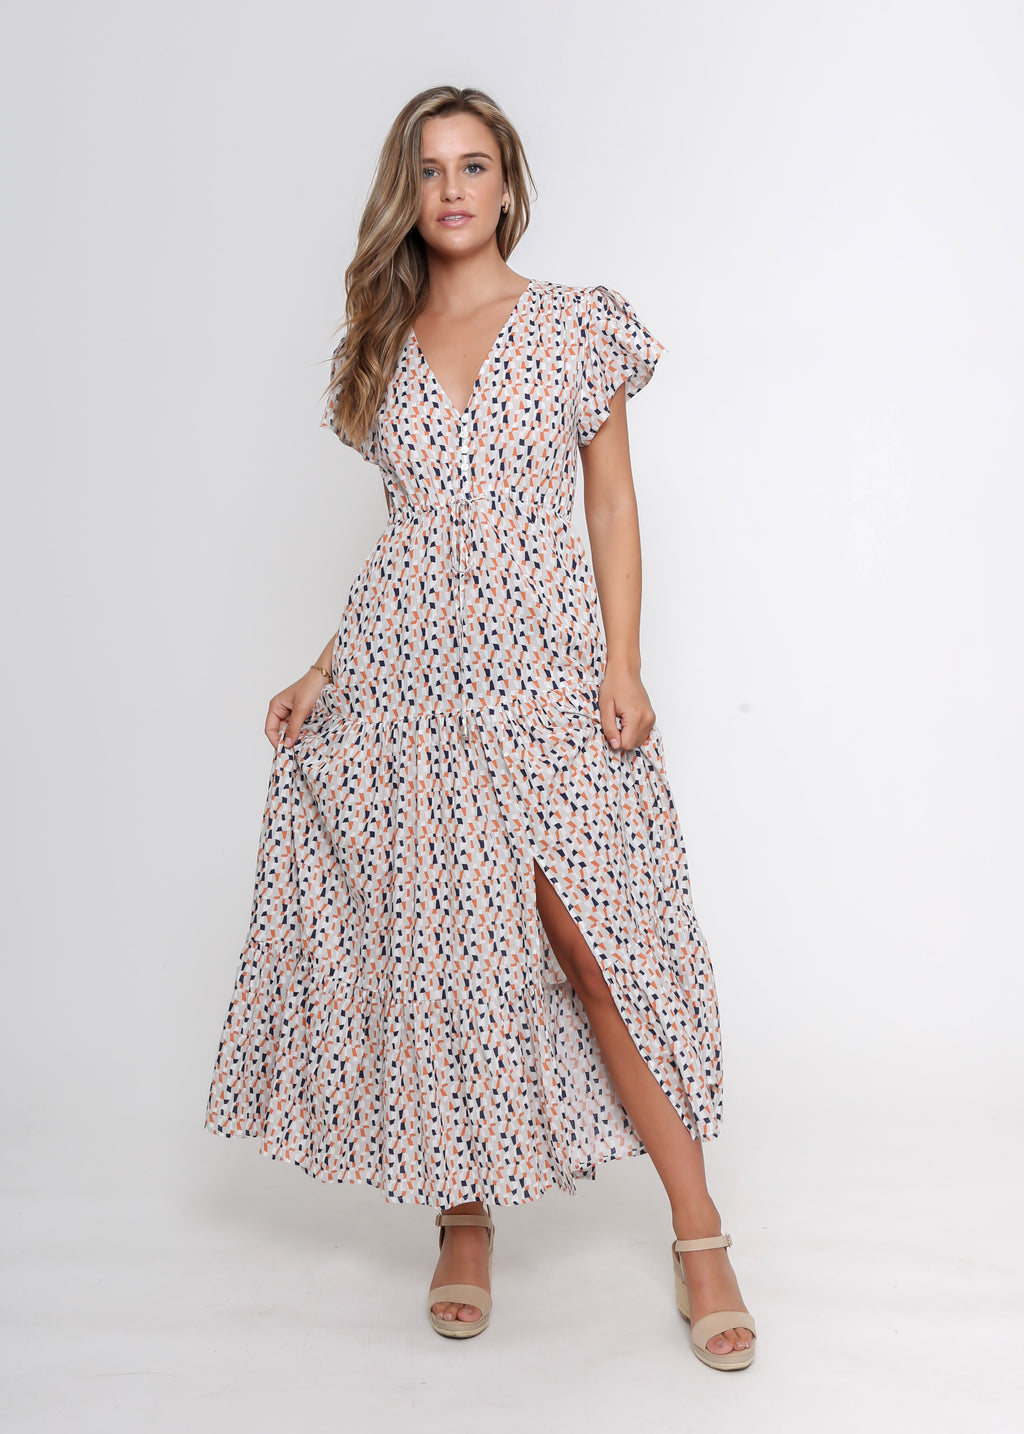 SUNNY MAXI DRESS - NAVY PRINT - LAST STOCK